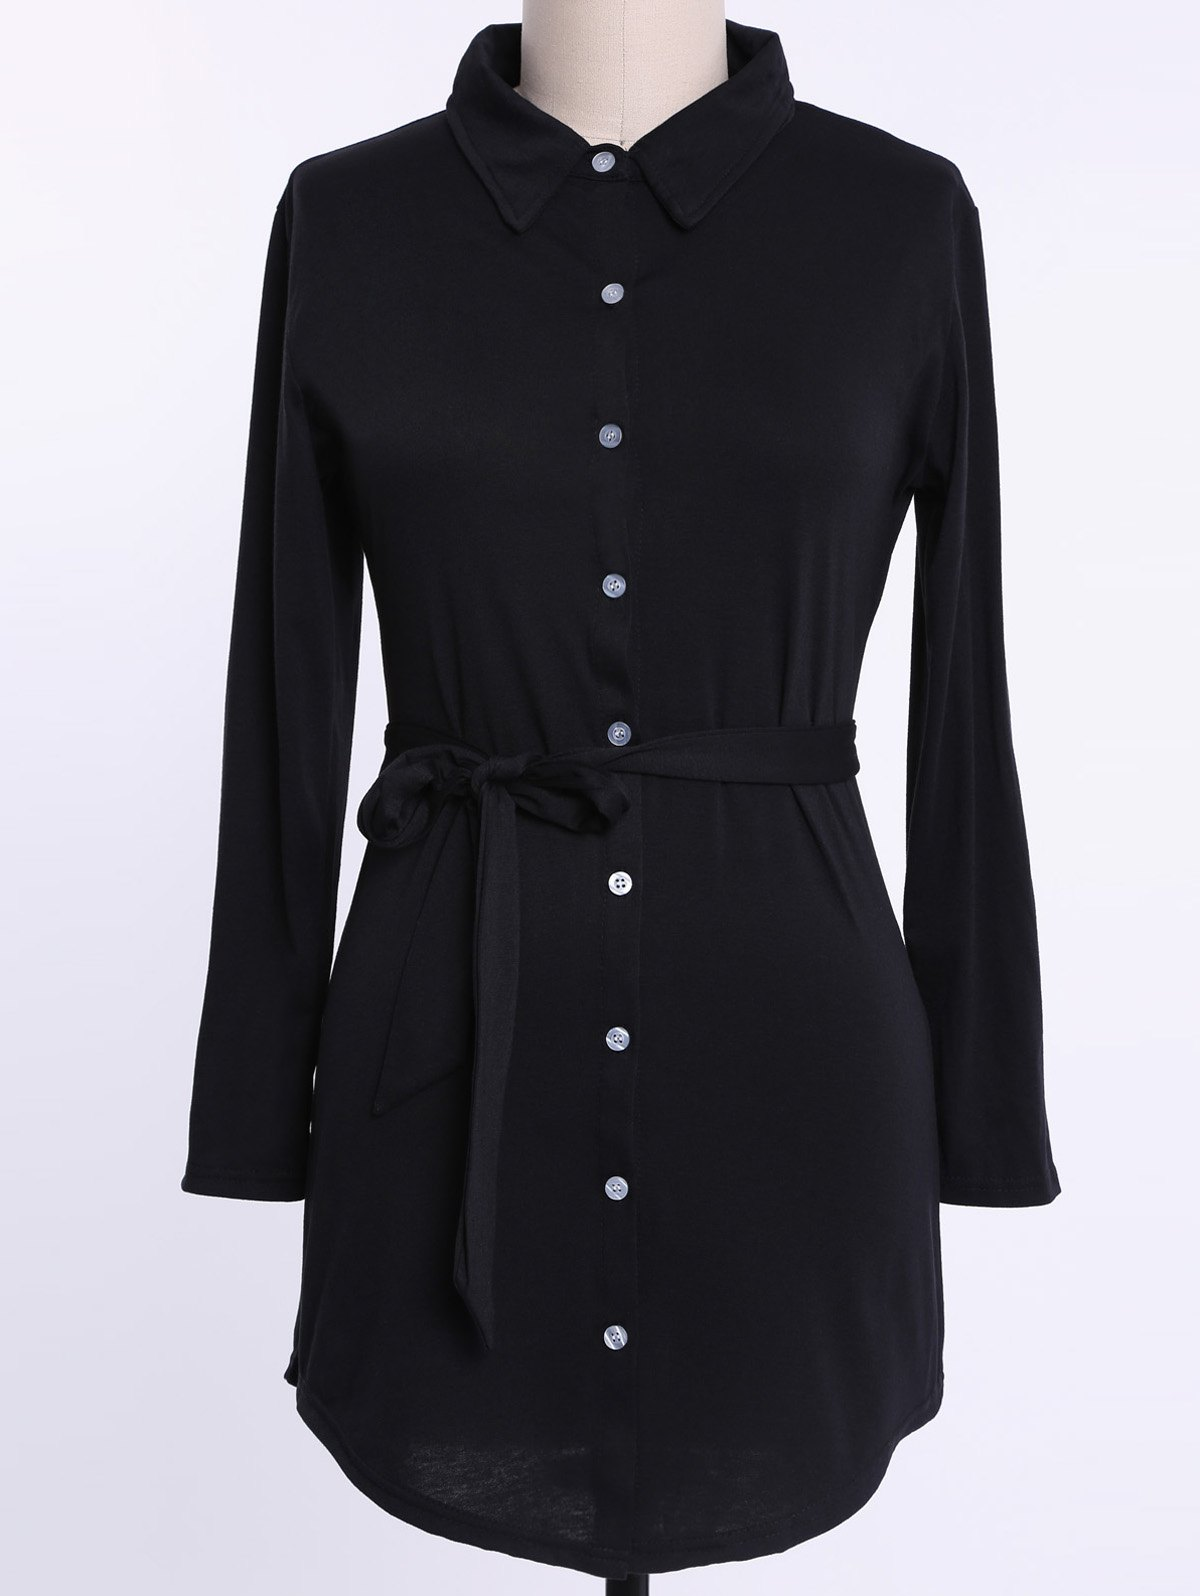 Charming Black Shirt Collar Long Sleeve Pleated Plus Size Dress For Women